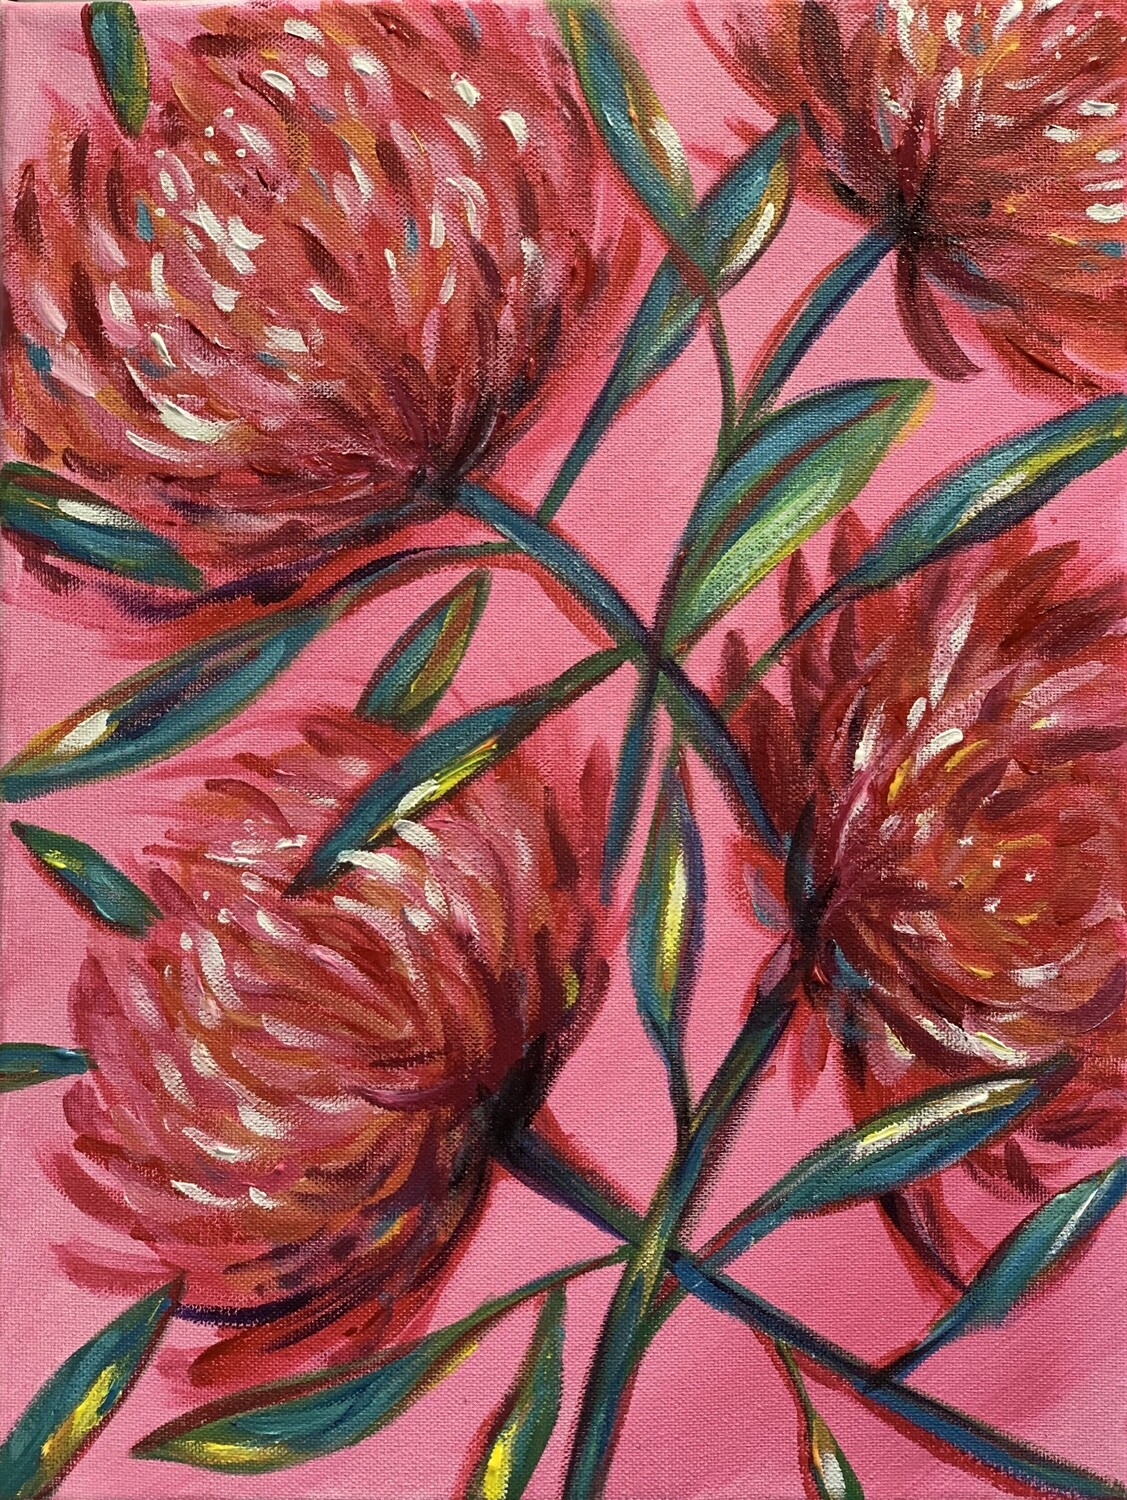 Paint n Sip at The Seed! Thursday 6 August 6-8pm